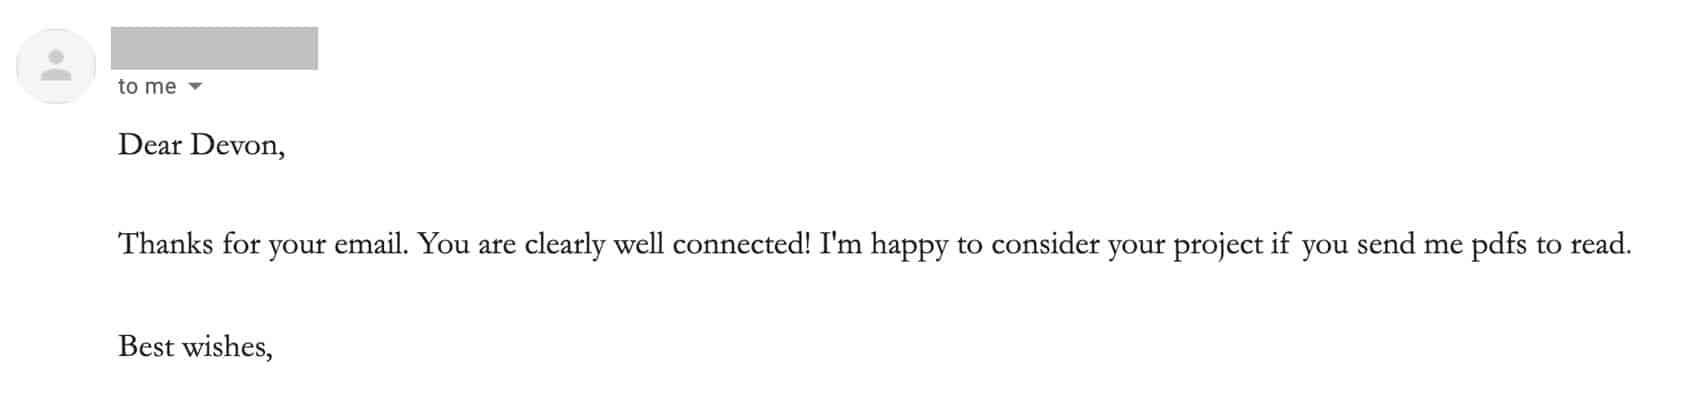 Email response from a literary agent